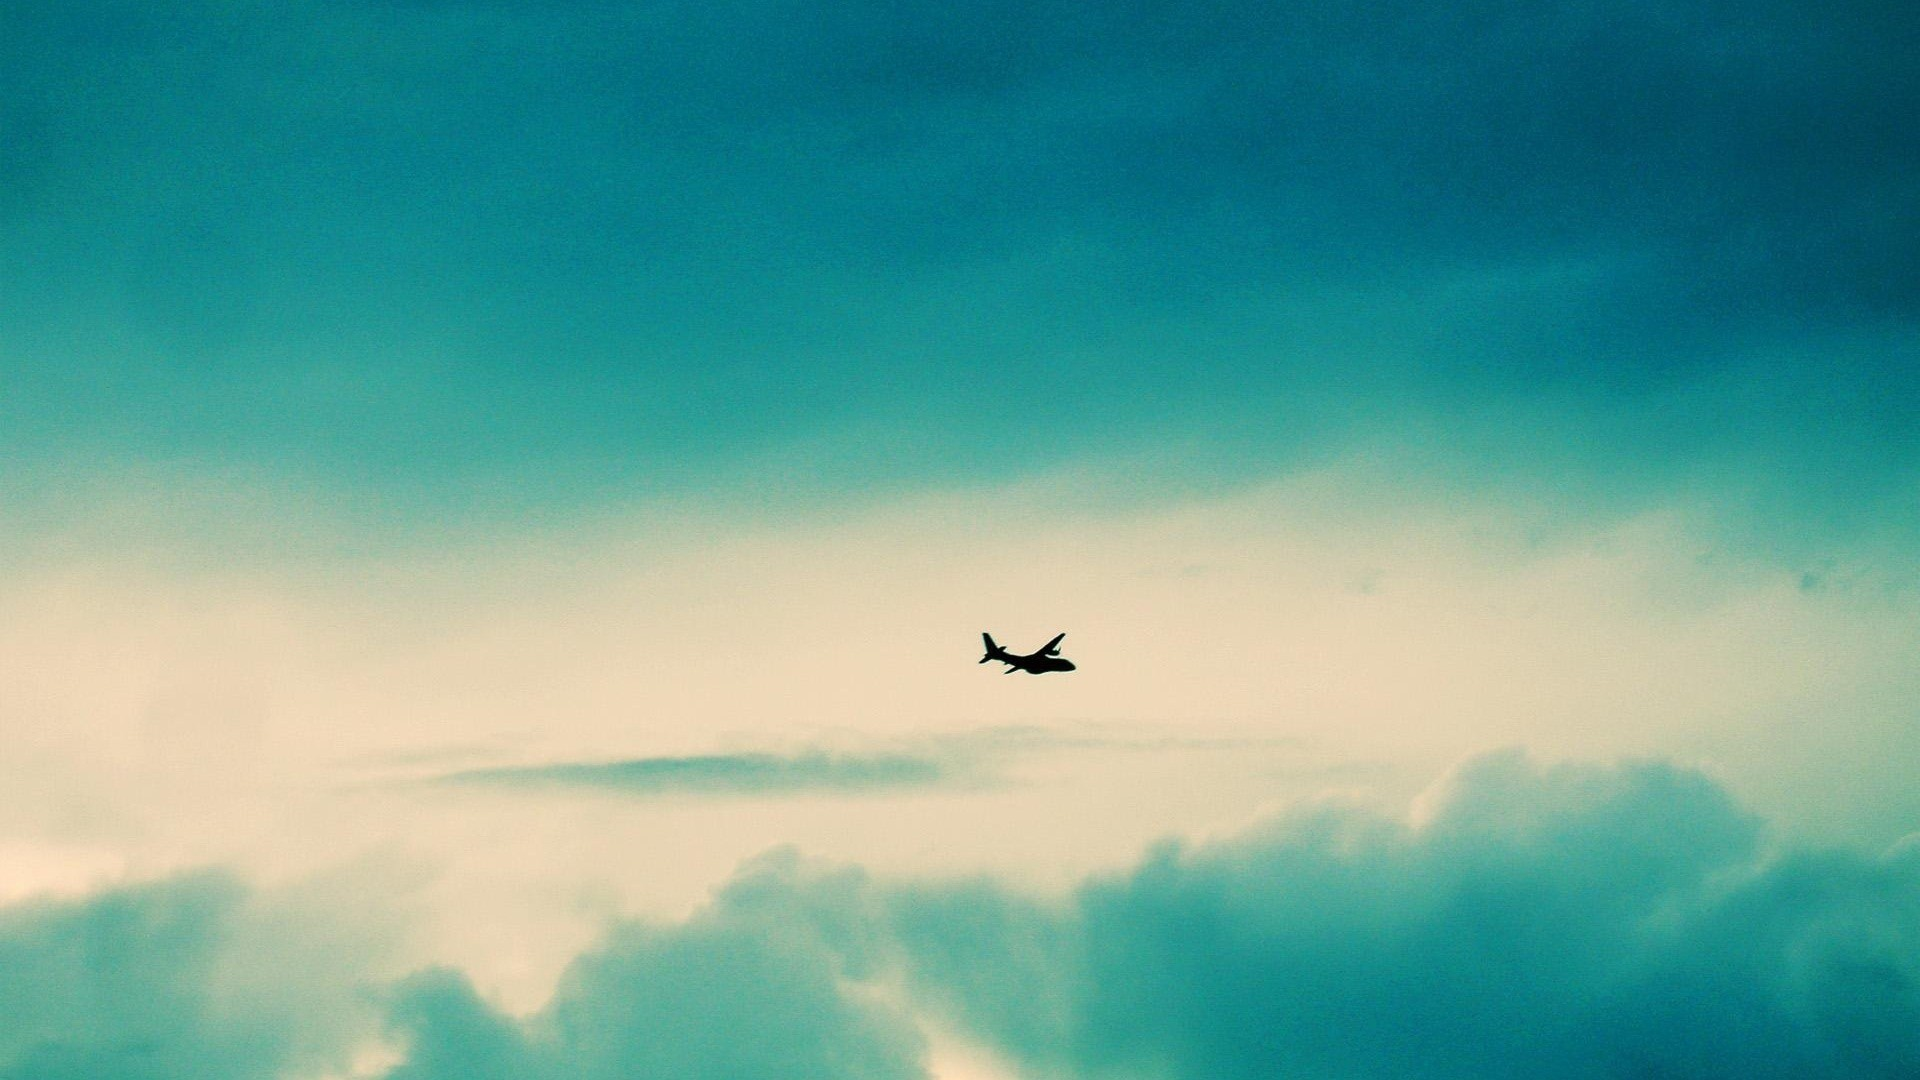 1920x1080 Aircraft Turquoise Clouds Desktop Wallpaper Uploaded by DesktopWalls